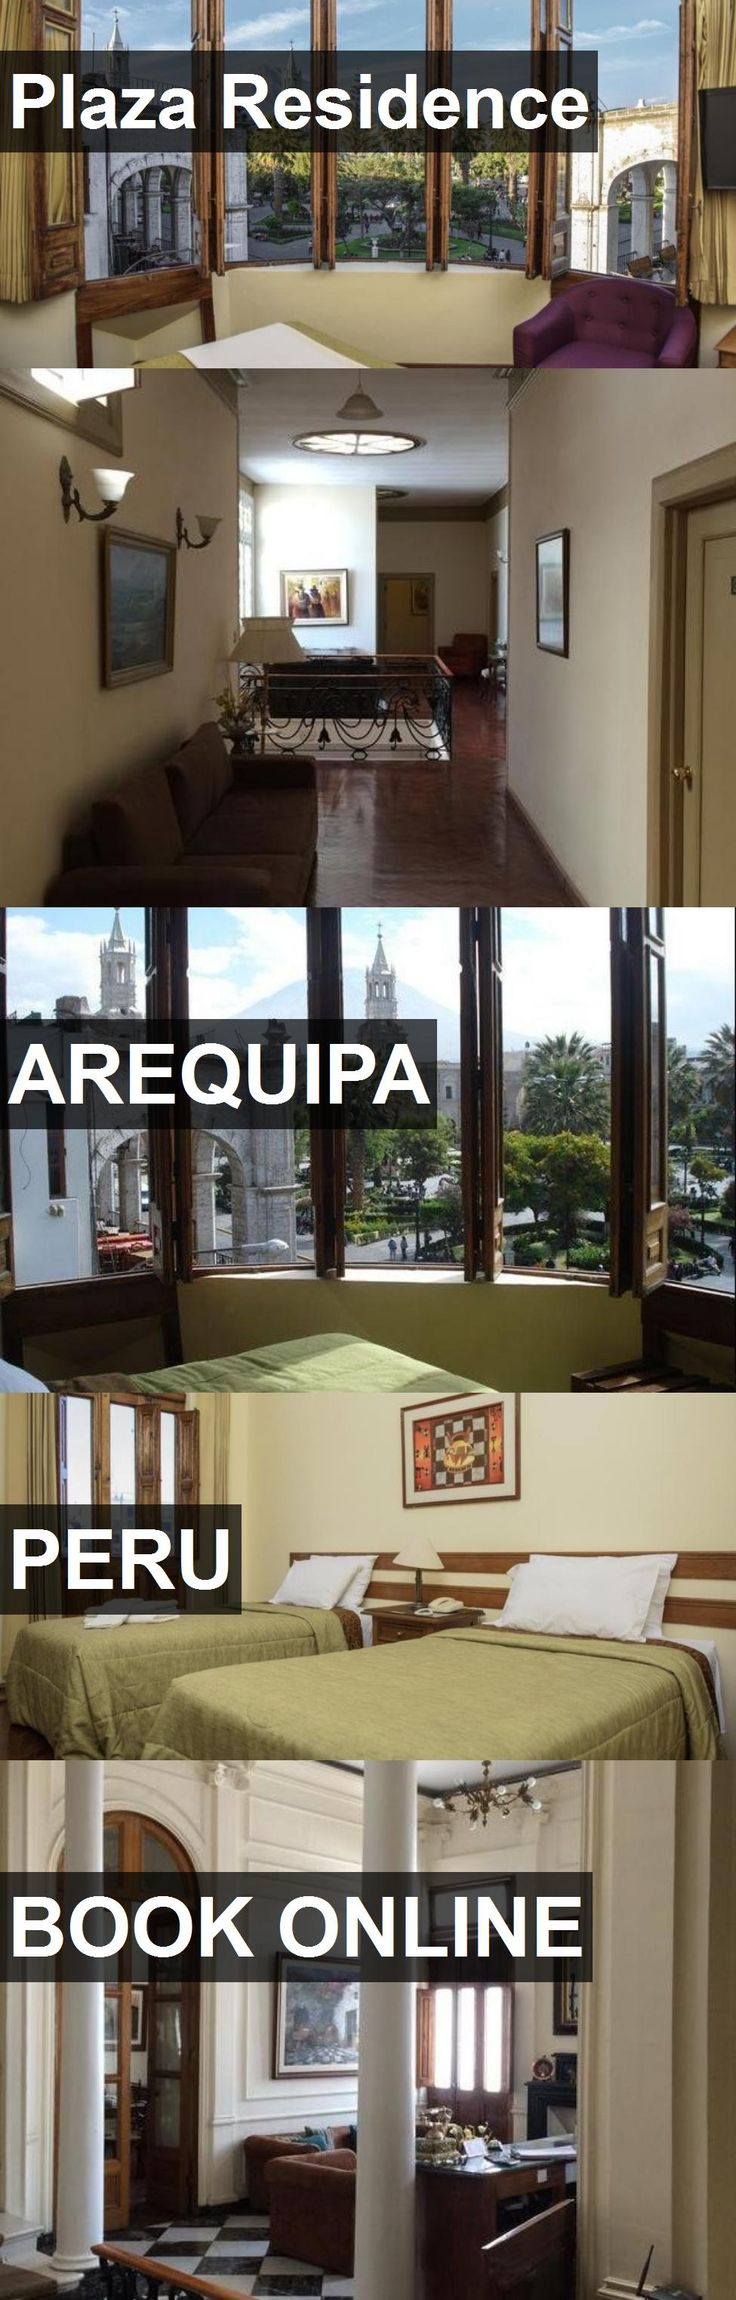 Hotel Plaza Residence in Arequipa, Peru. For more information, photos, reviews and best prices please follow the link. #Peru #Arequipa #travel #vacation #hotel